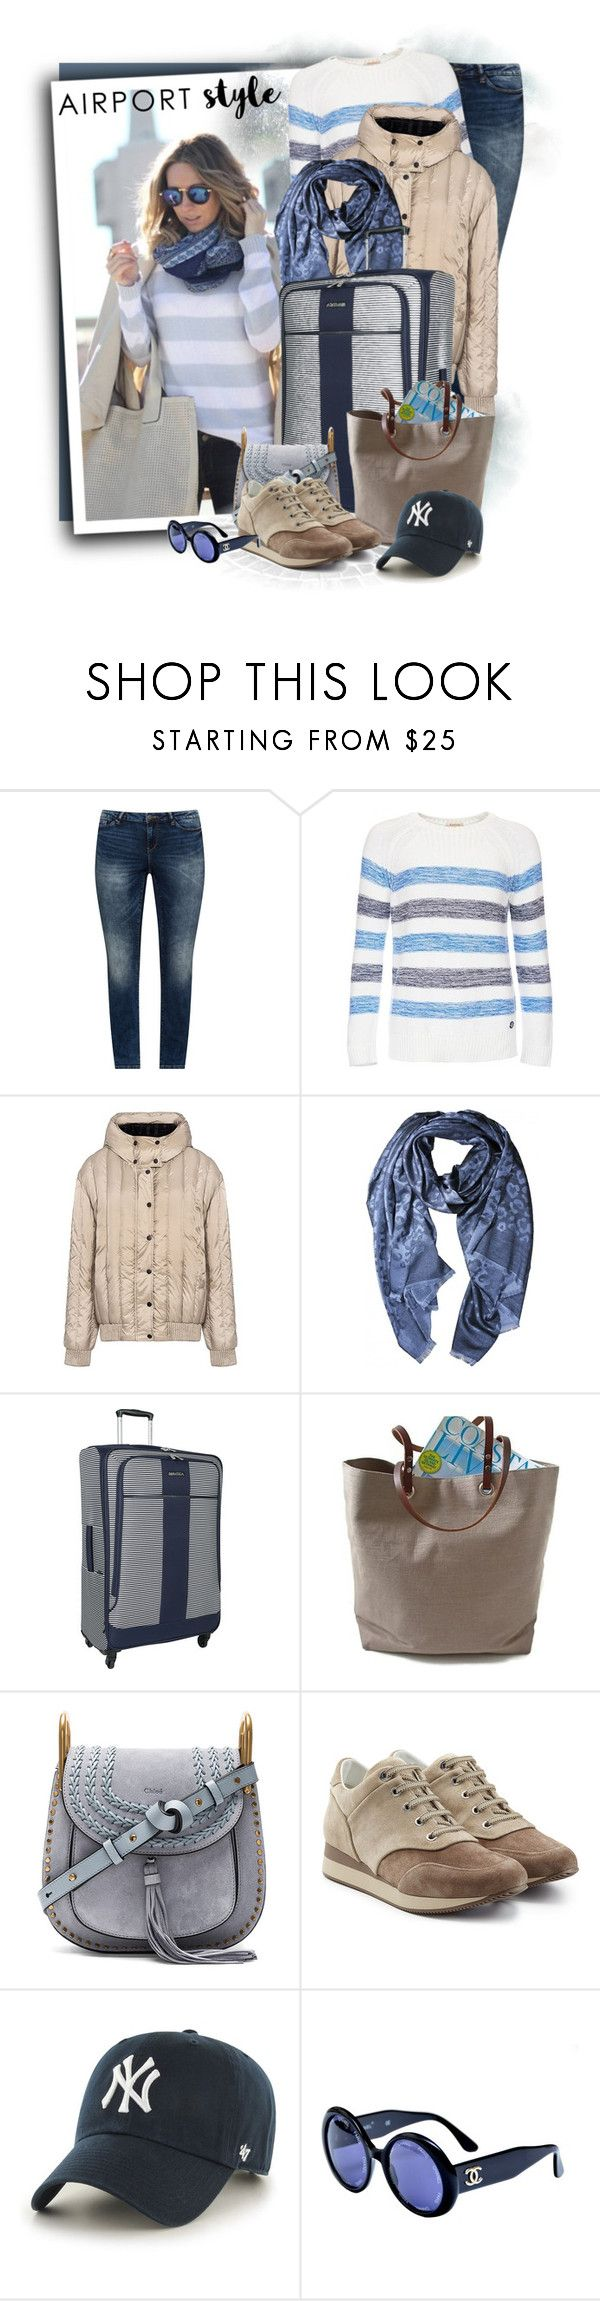 """Spinner - Navy/white - Checked Luggage"" by tasha1973 ❤ liked on Polyvore featuring JunaRose, Barbour, RED Valentino, Nautica, Independent Reign, Chloé, MaxMara, '47 Brand and Chanel"